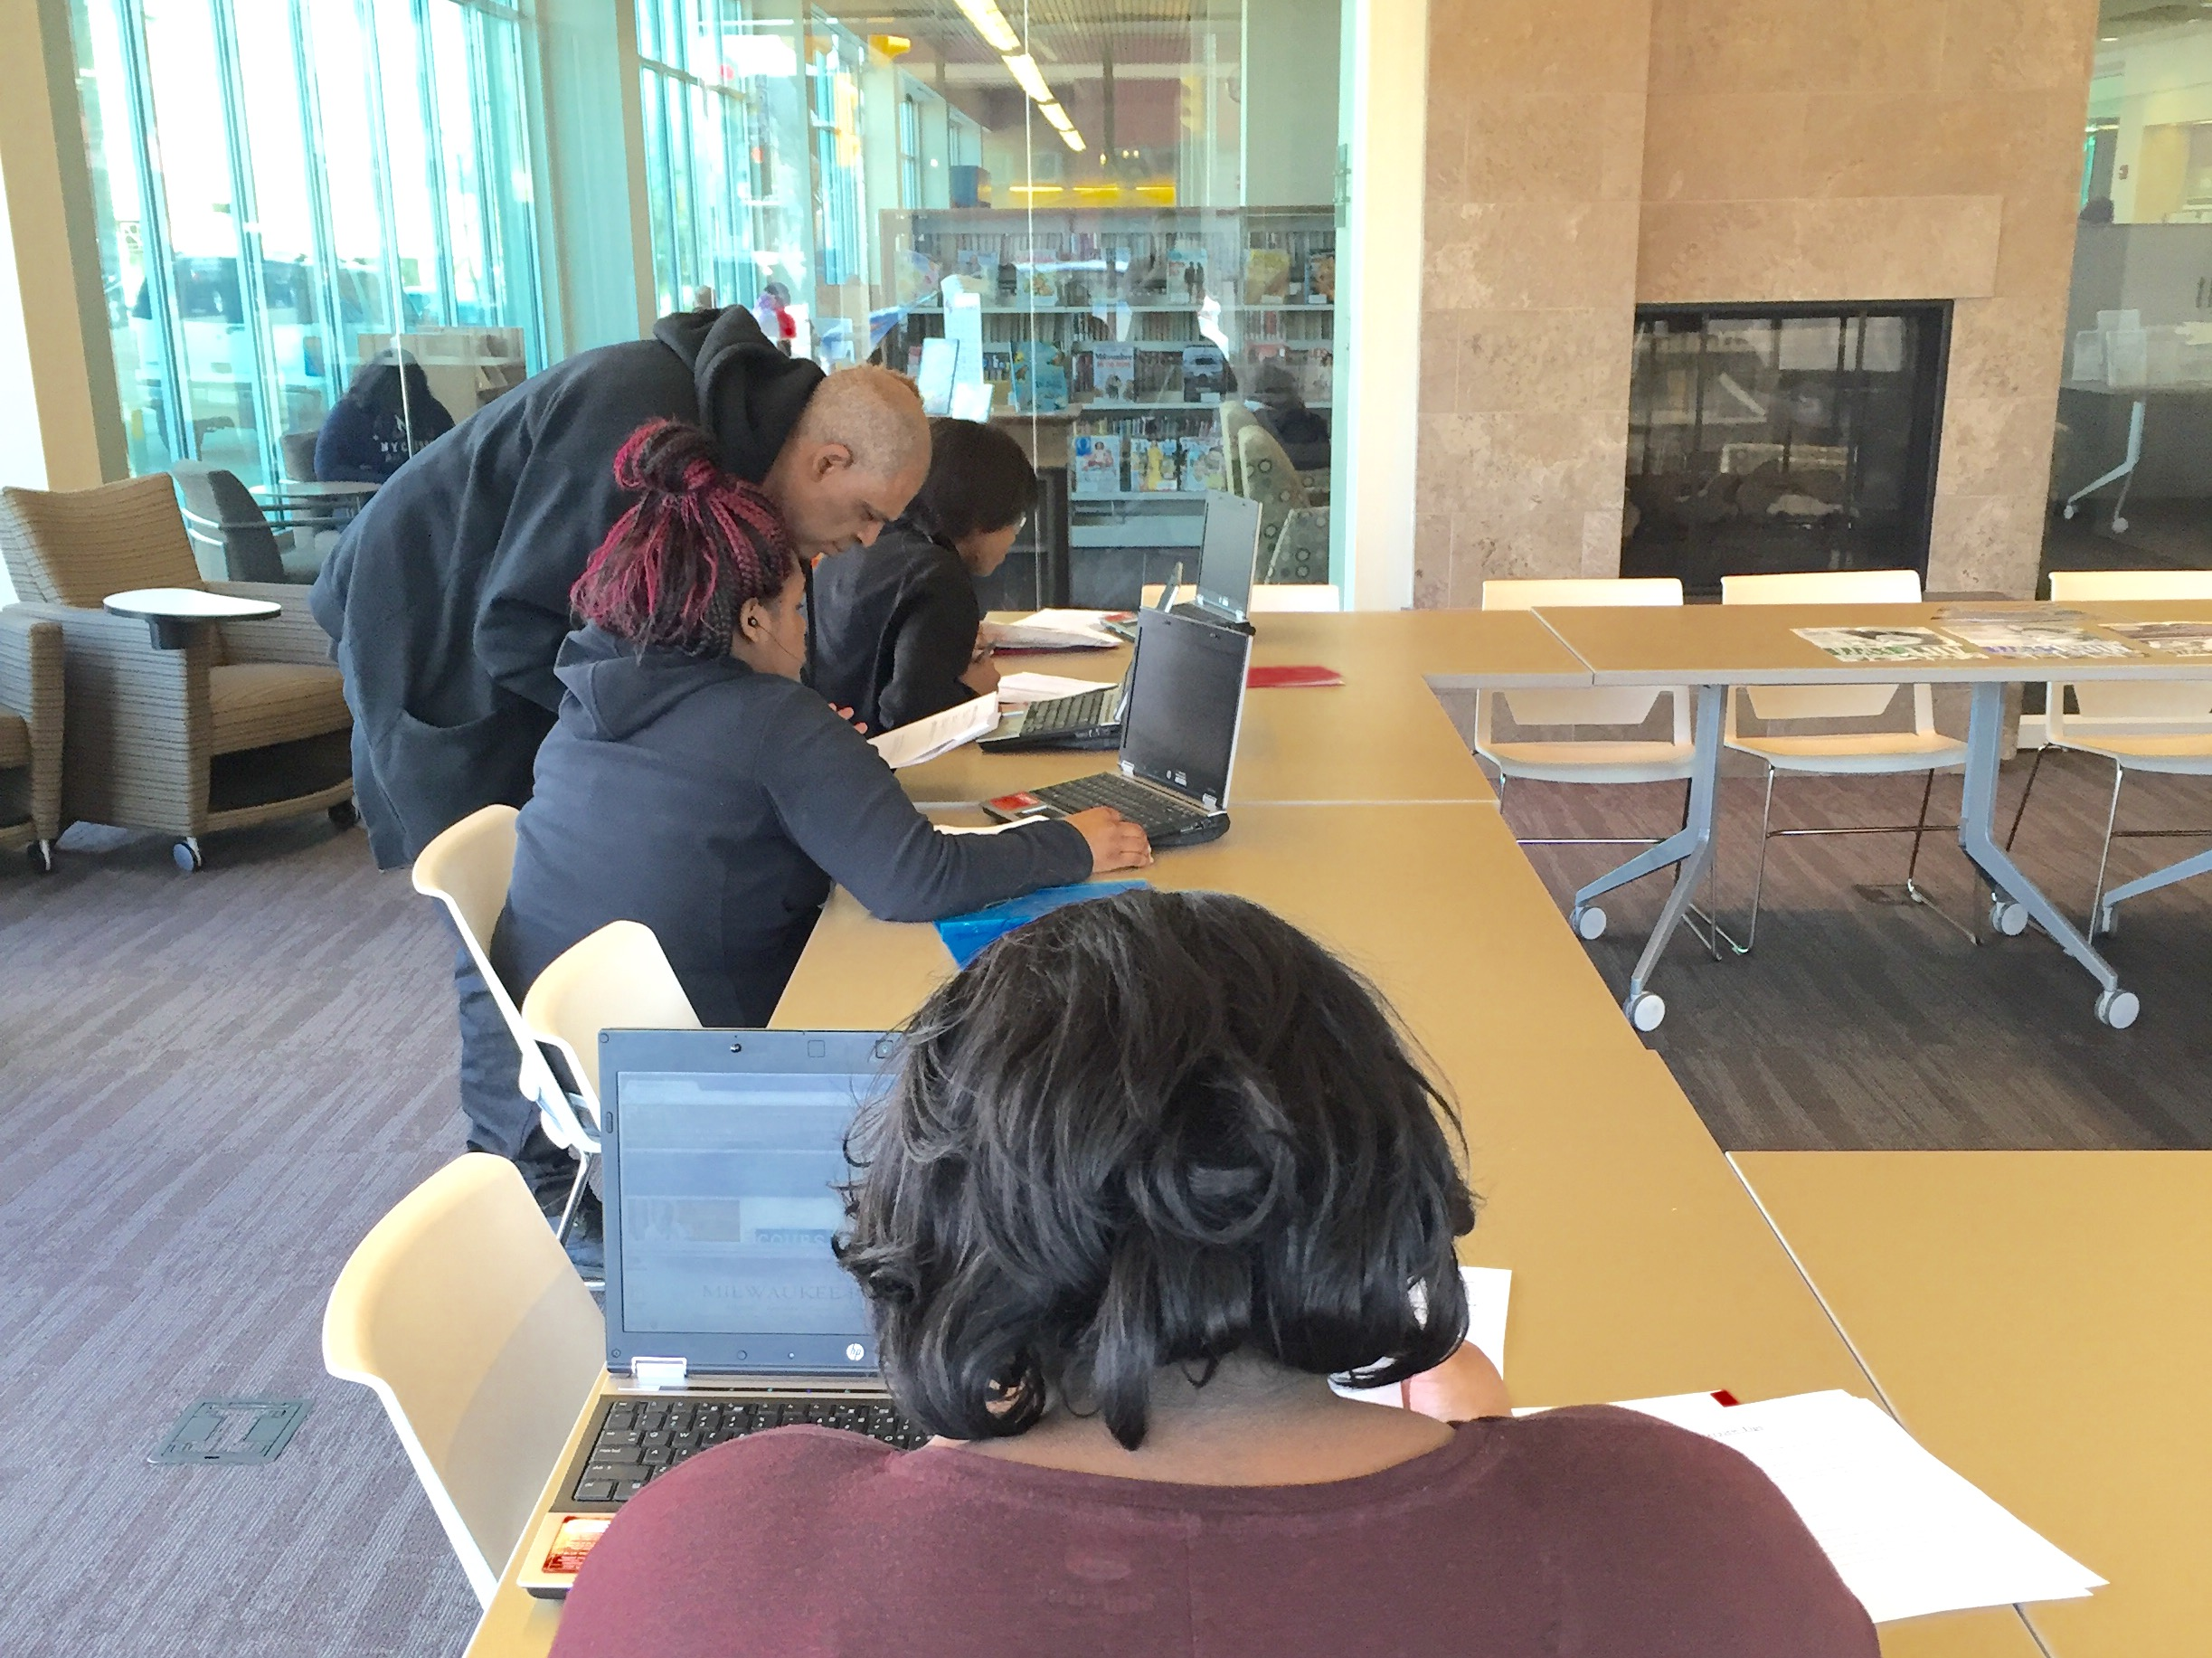 teen job workshop at villard square branch middot mpl if you re not in this photo it means you missed the teen job workshop today at villard square branch don t panic there are several more chances to check